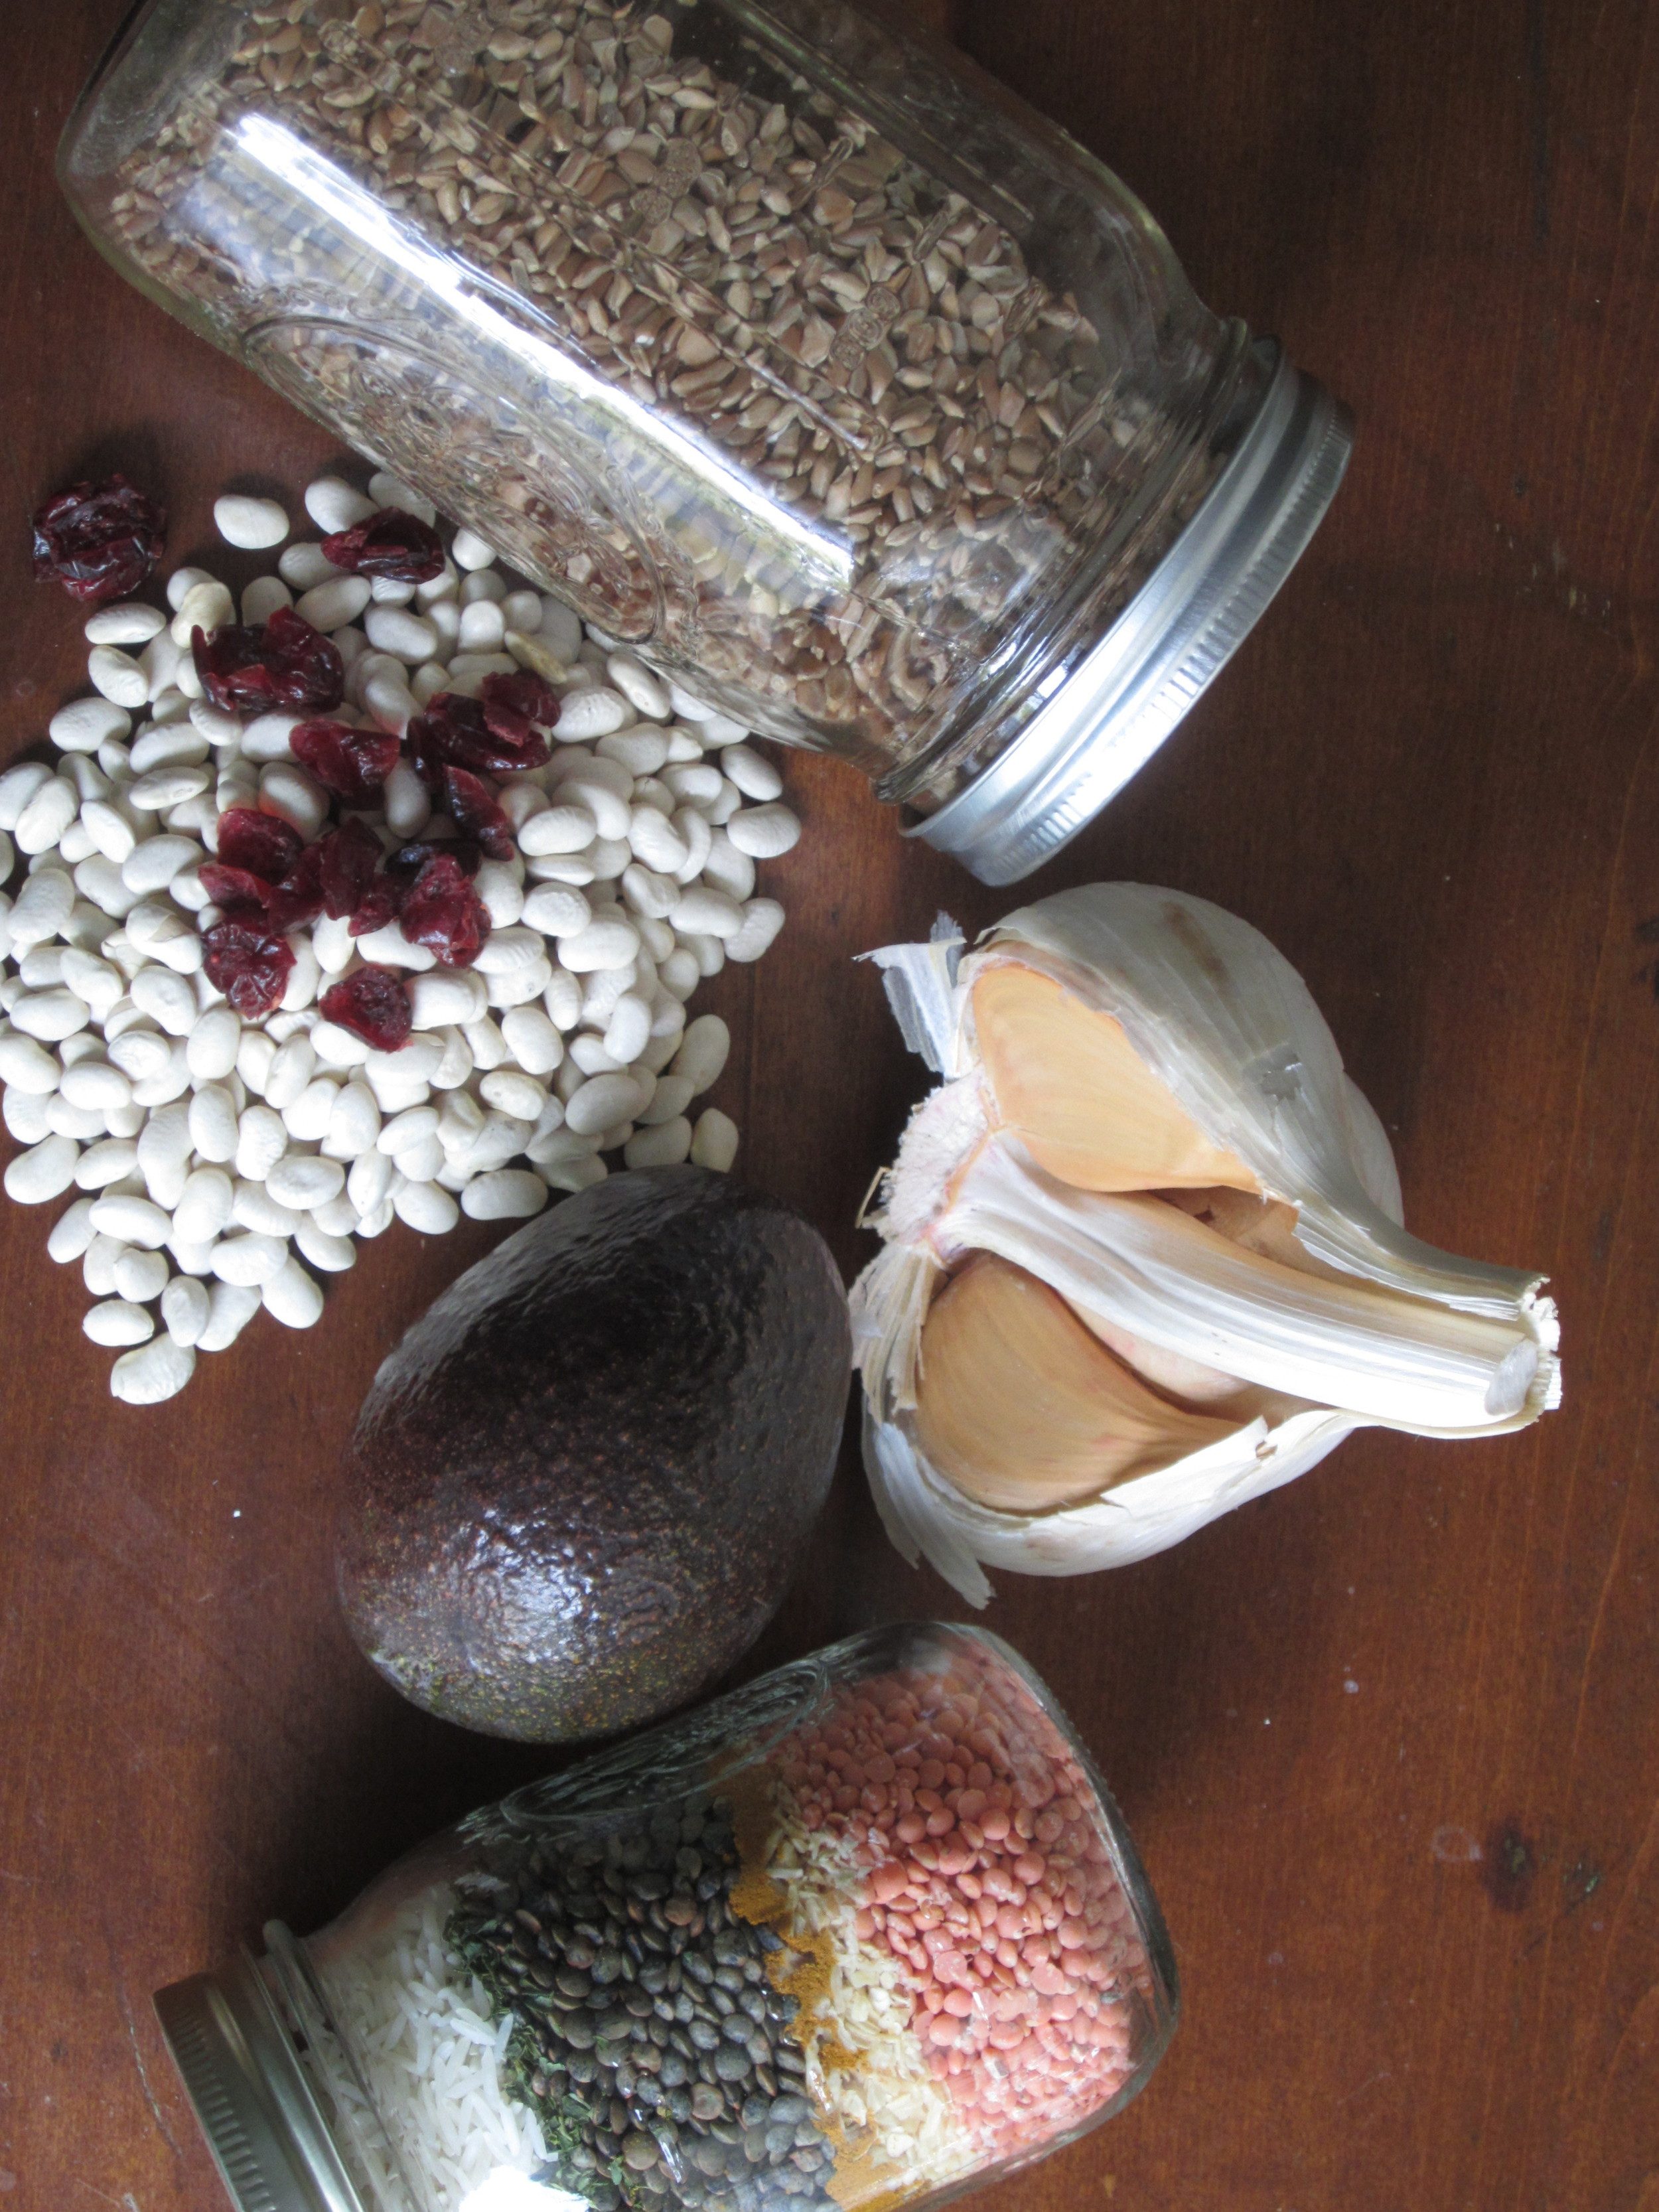 Is it difficult to get enough protein on a vegan diet without triggering your IBS symptoms?